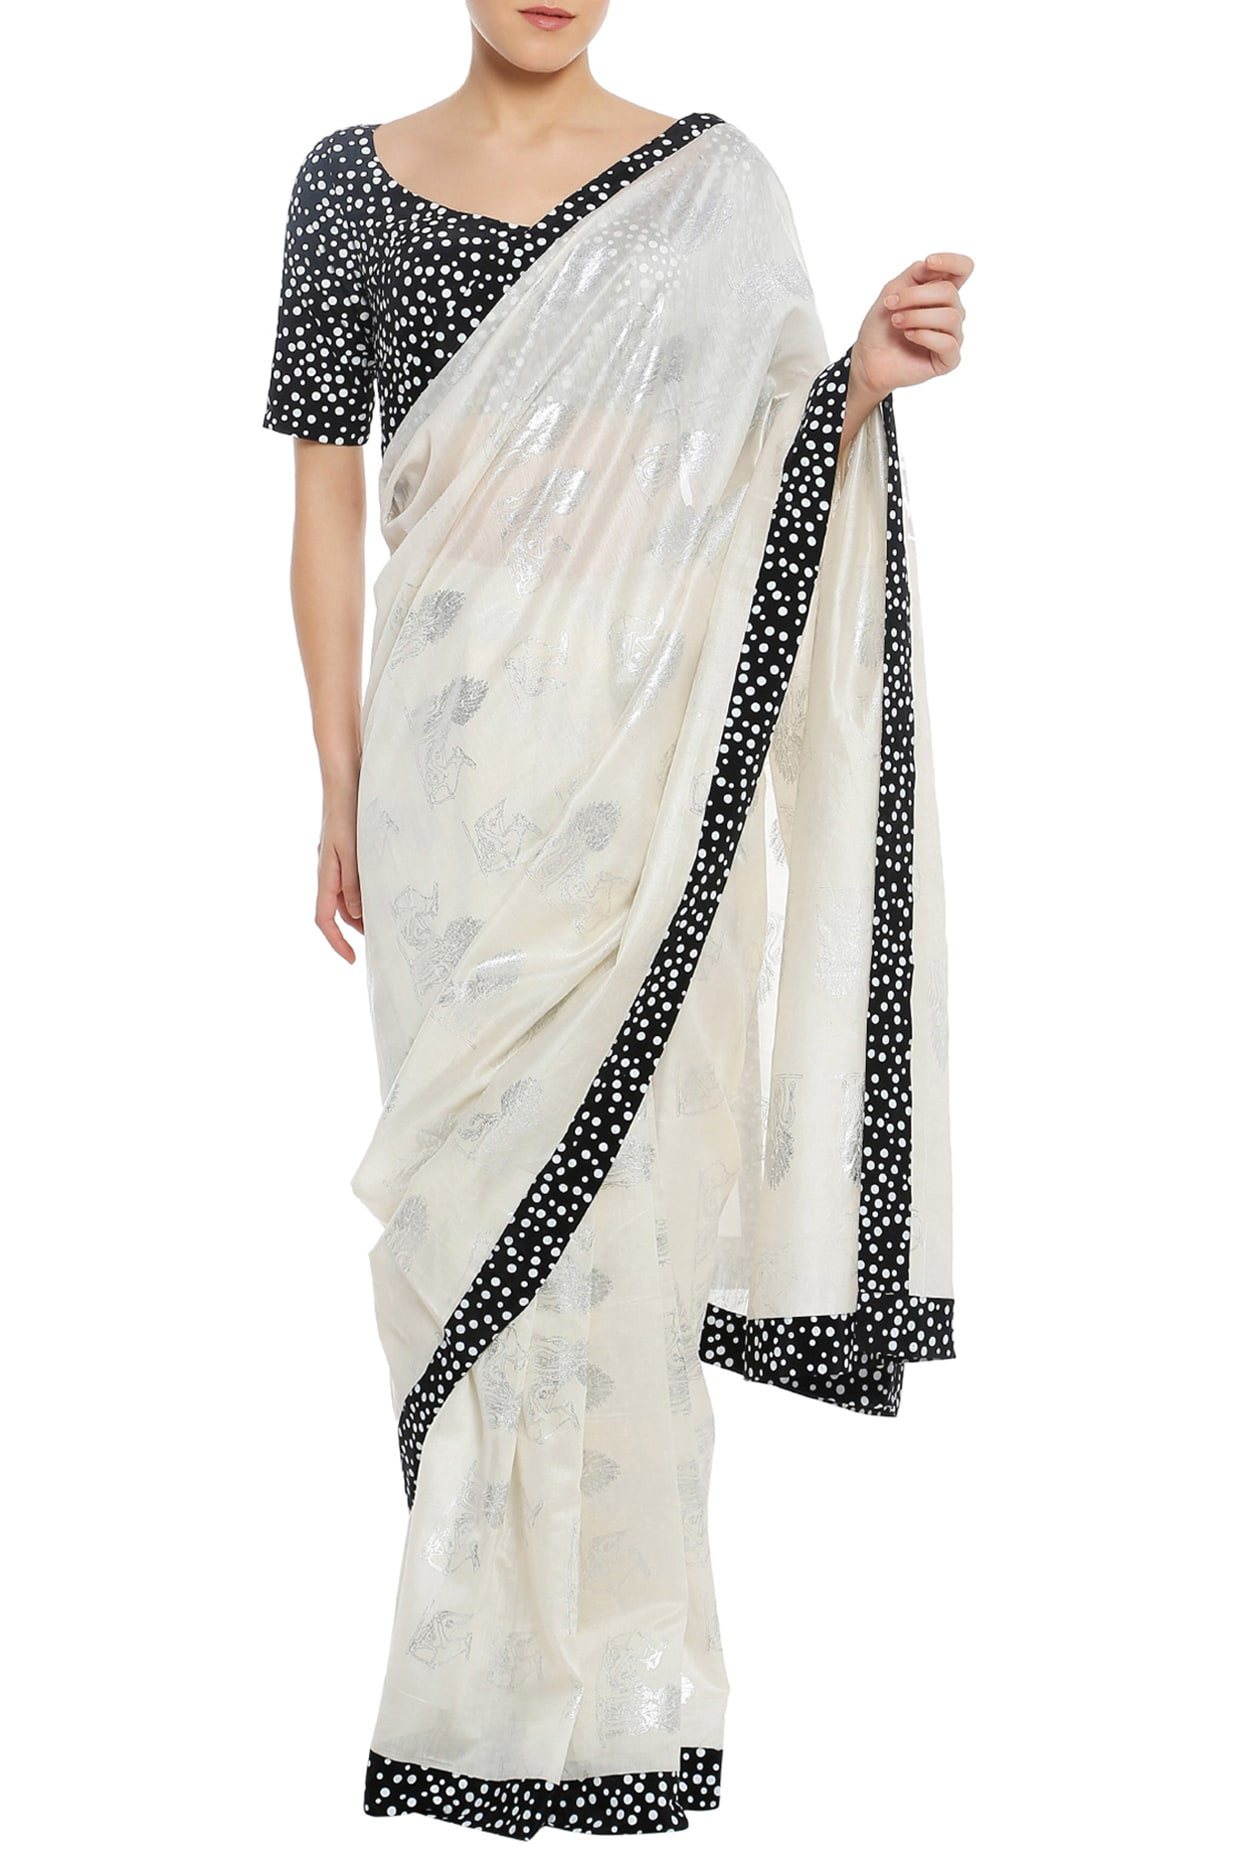 293ed581f2 Ivory printed saree with black blouse piece available only at Pernia's Pop  Up Shop.